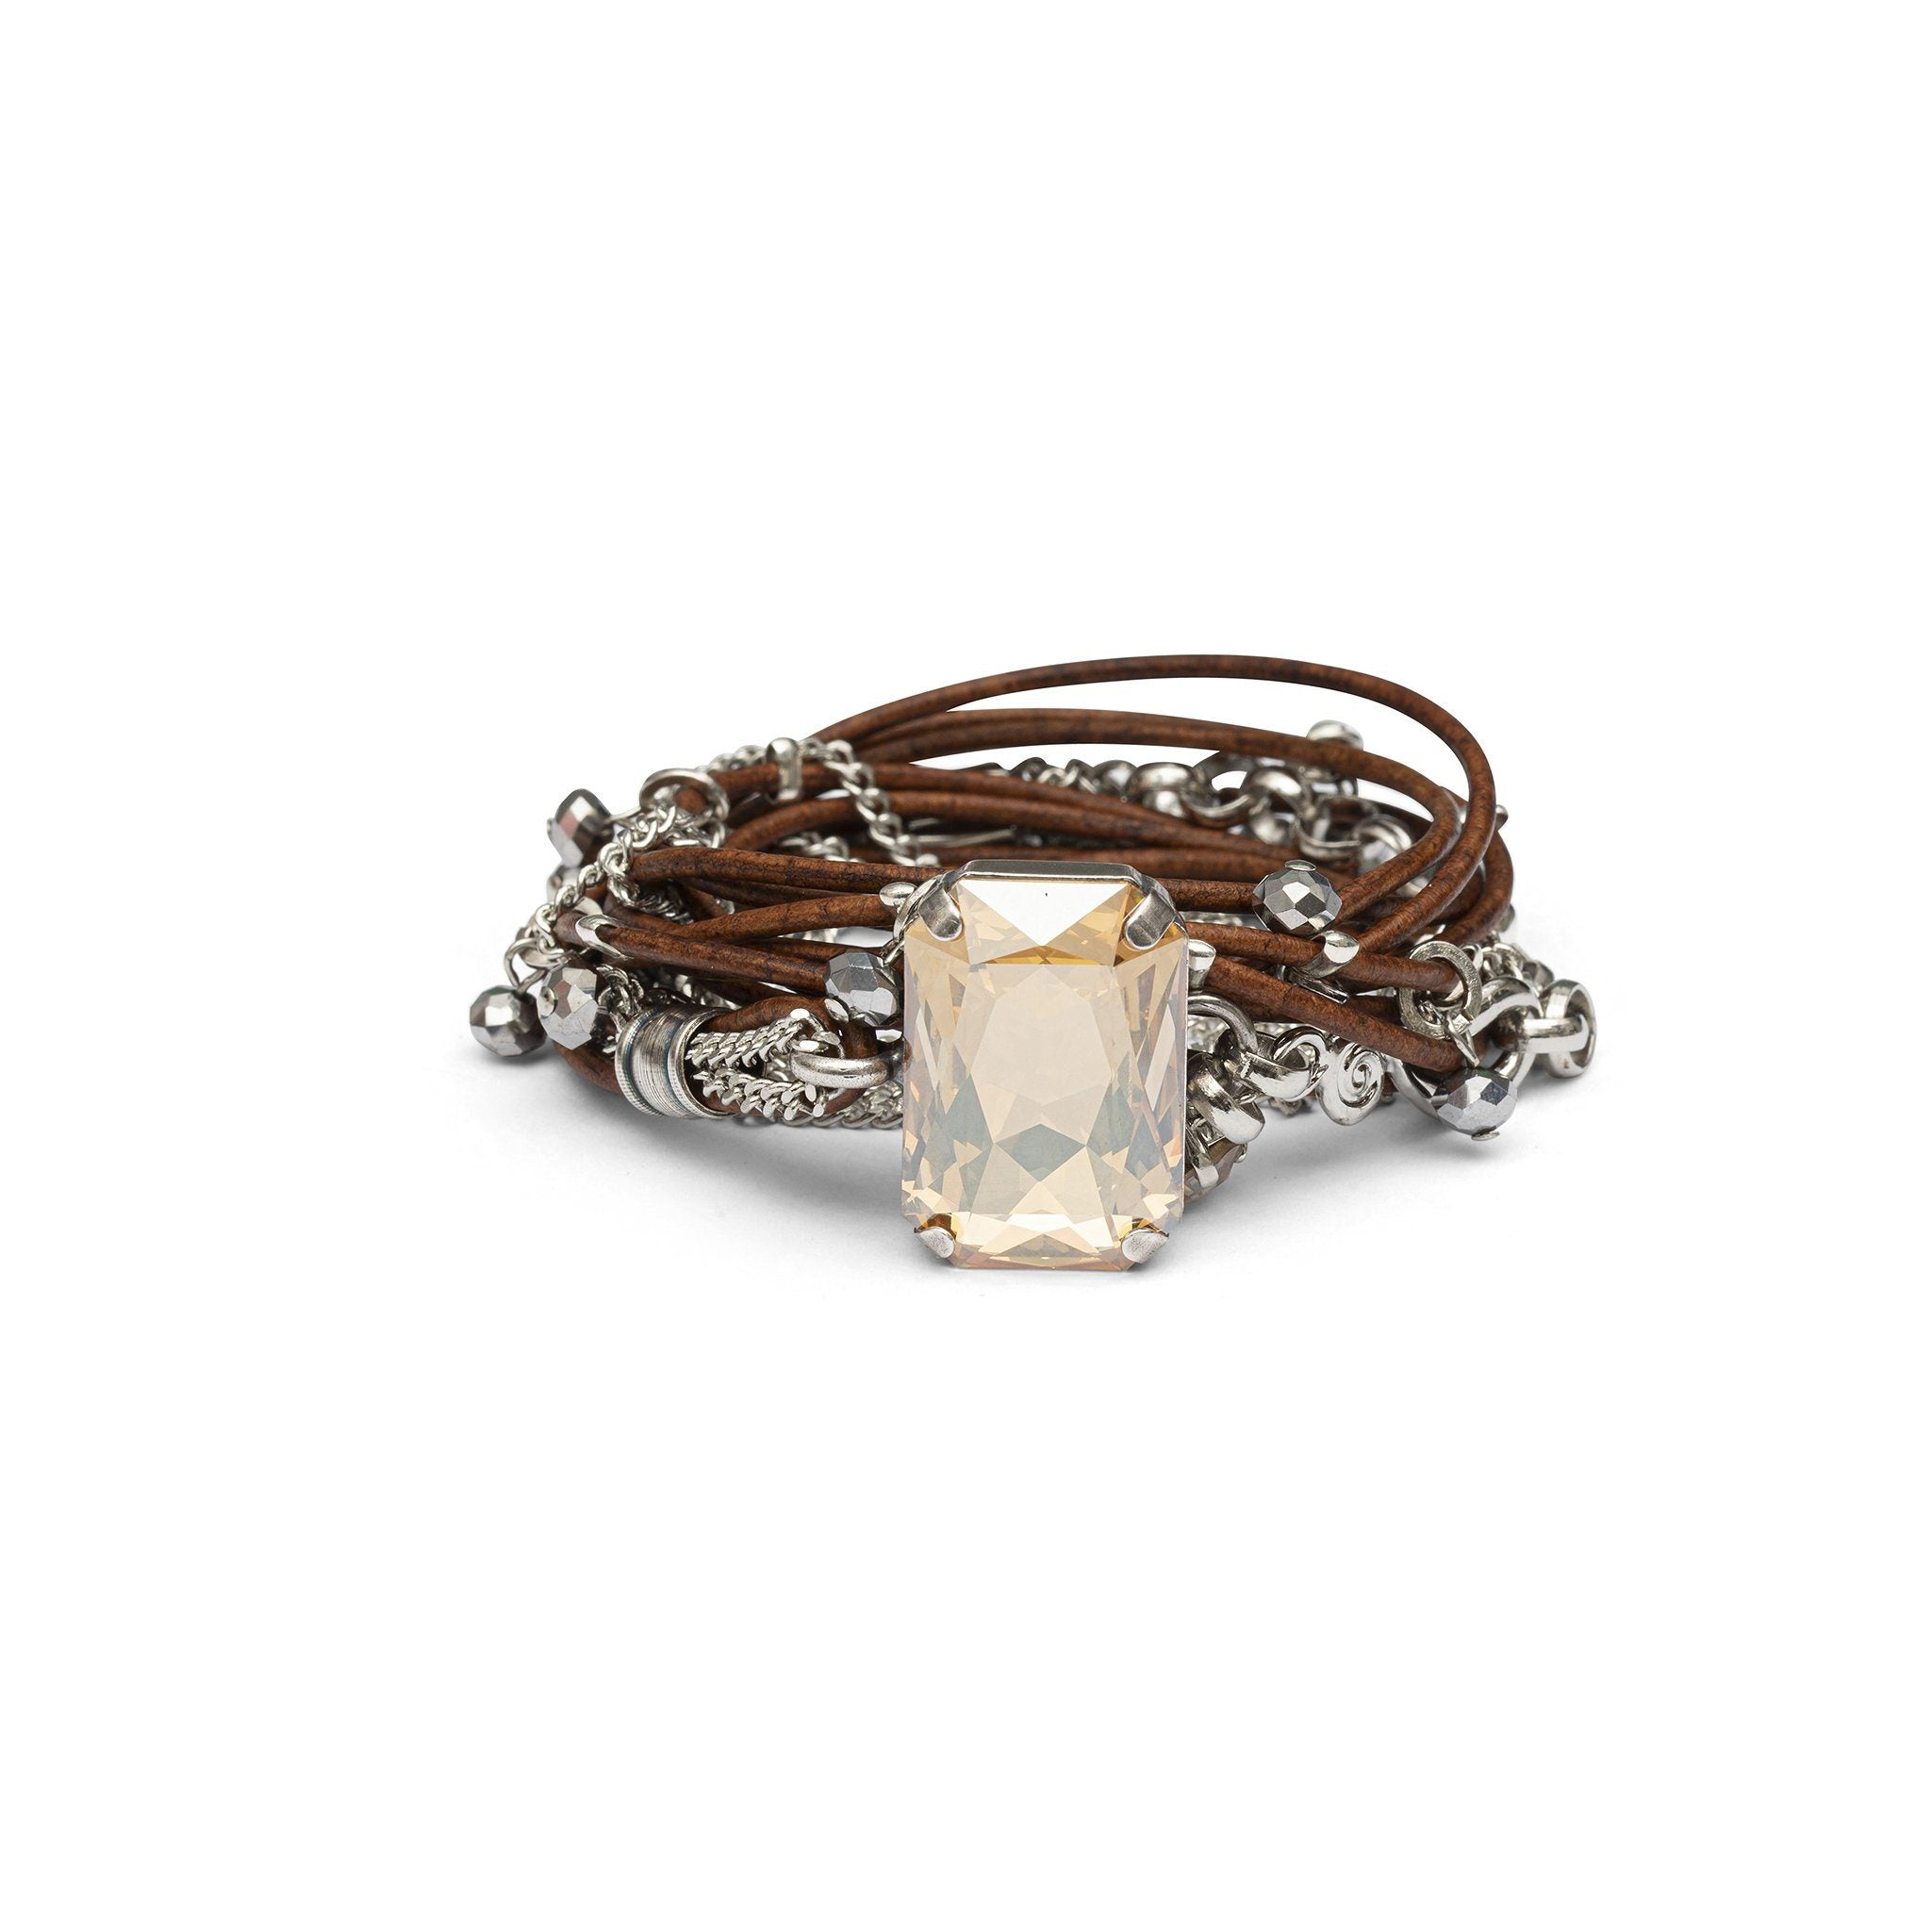 Stardust Leather Bracelet - Brown & Silver